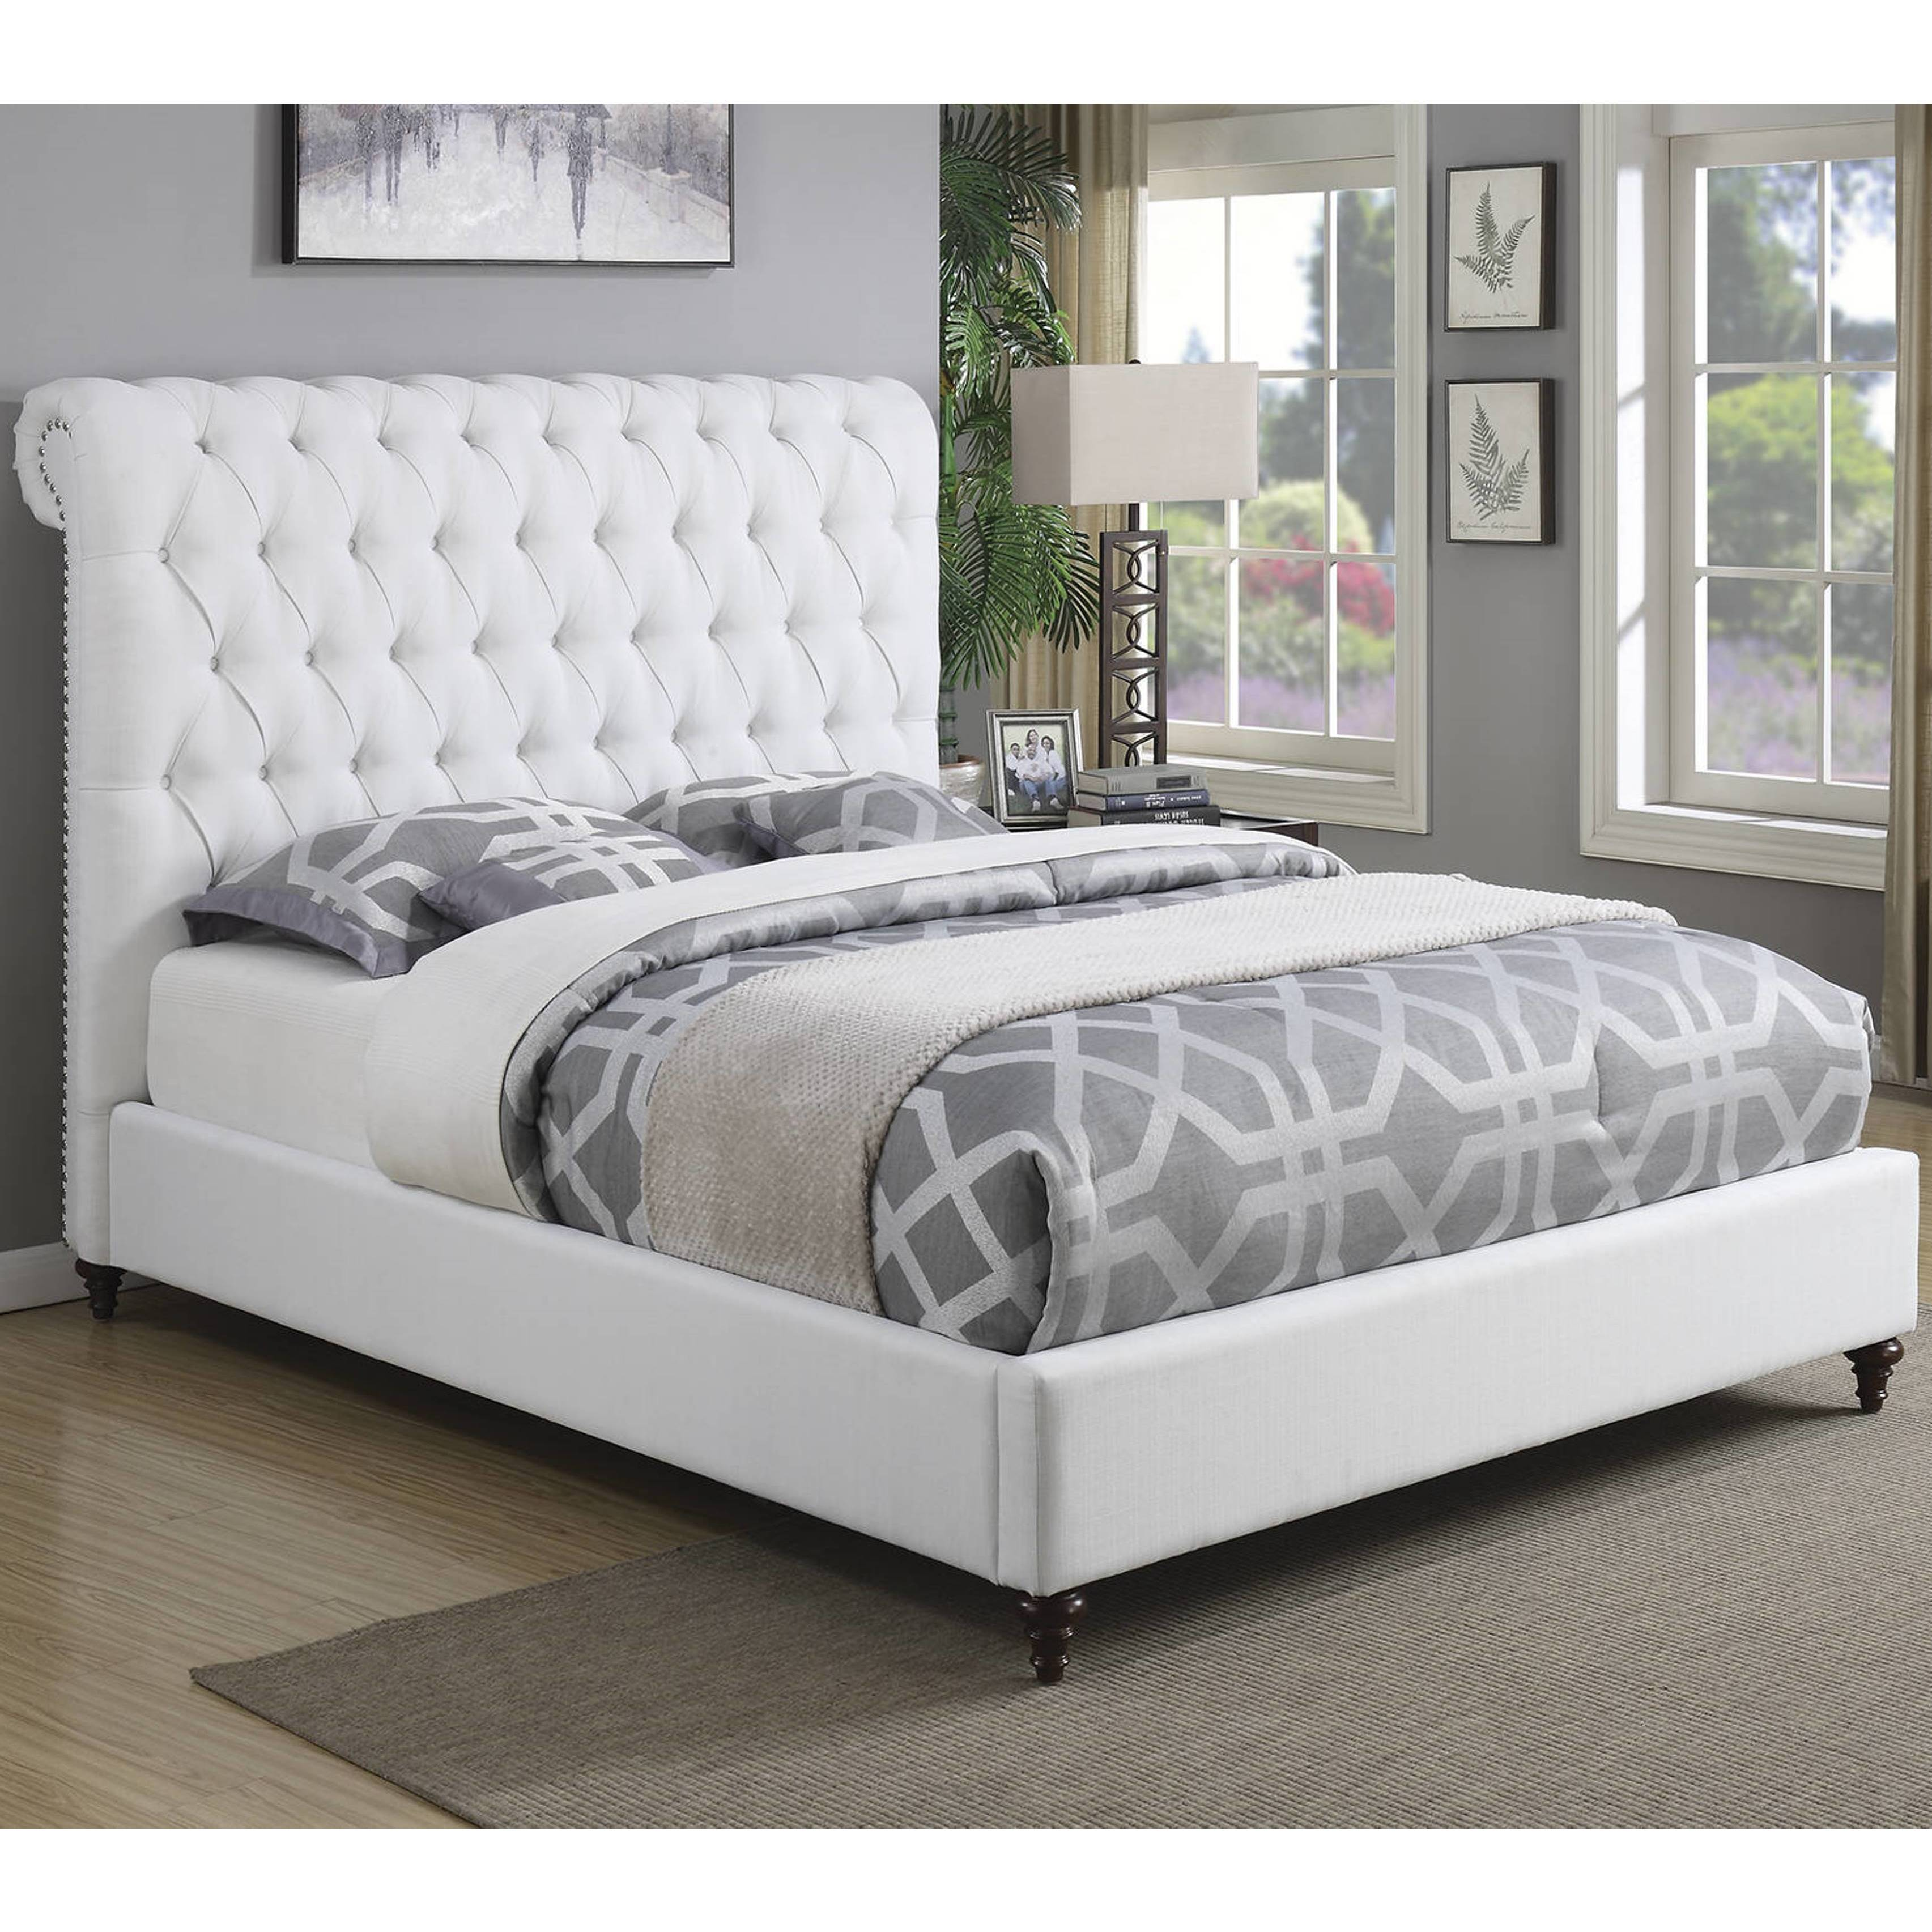 it modway wingback haze nailhead upholstered queen zinus gray full taupe for elm trim this raleigh amp west region cotton headboard of size love in arched ordered brushed heathered lexington fullqueen by with